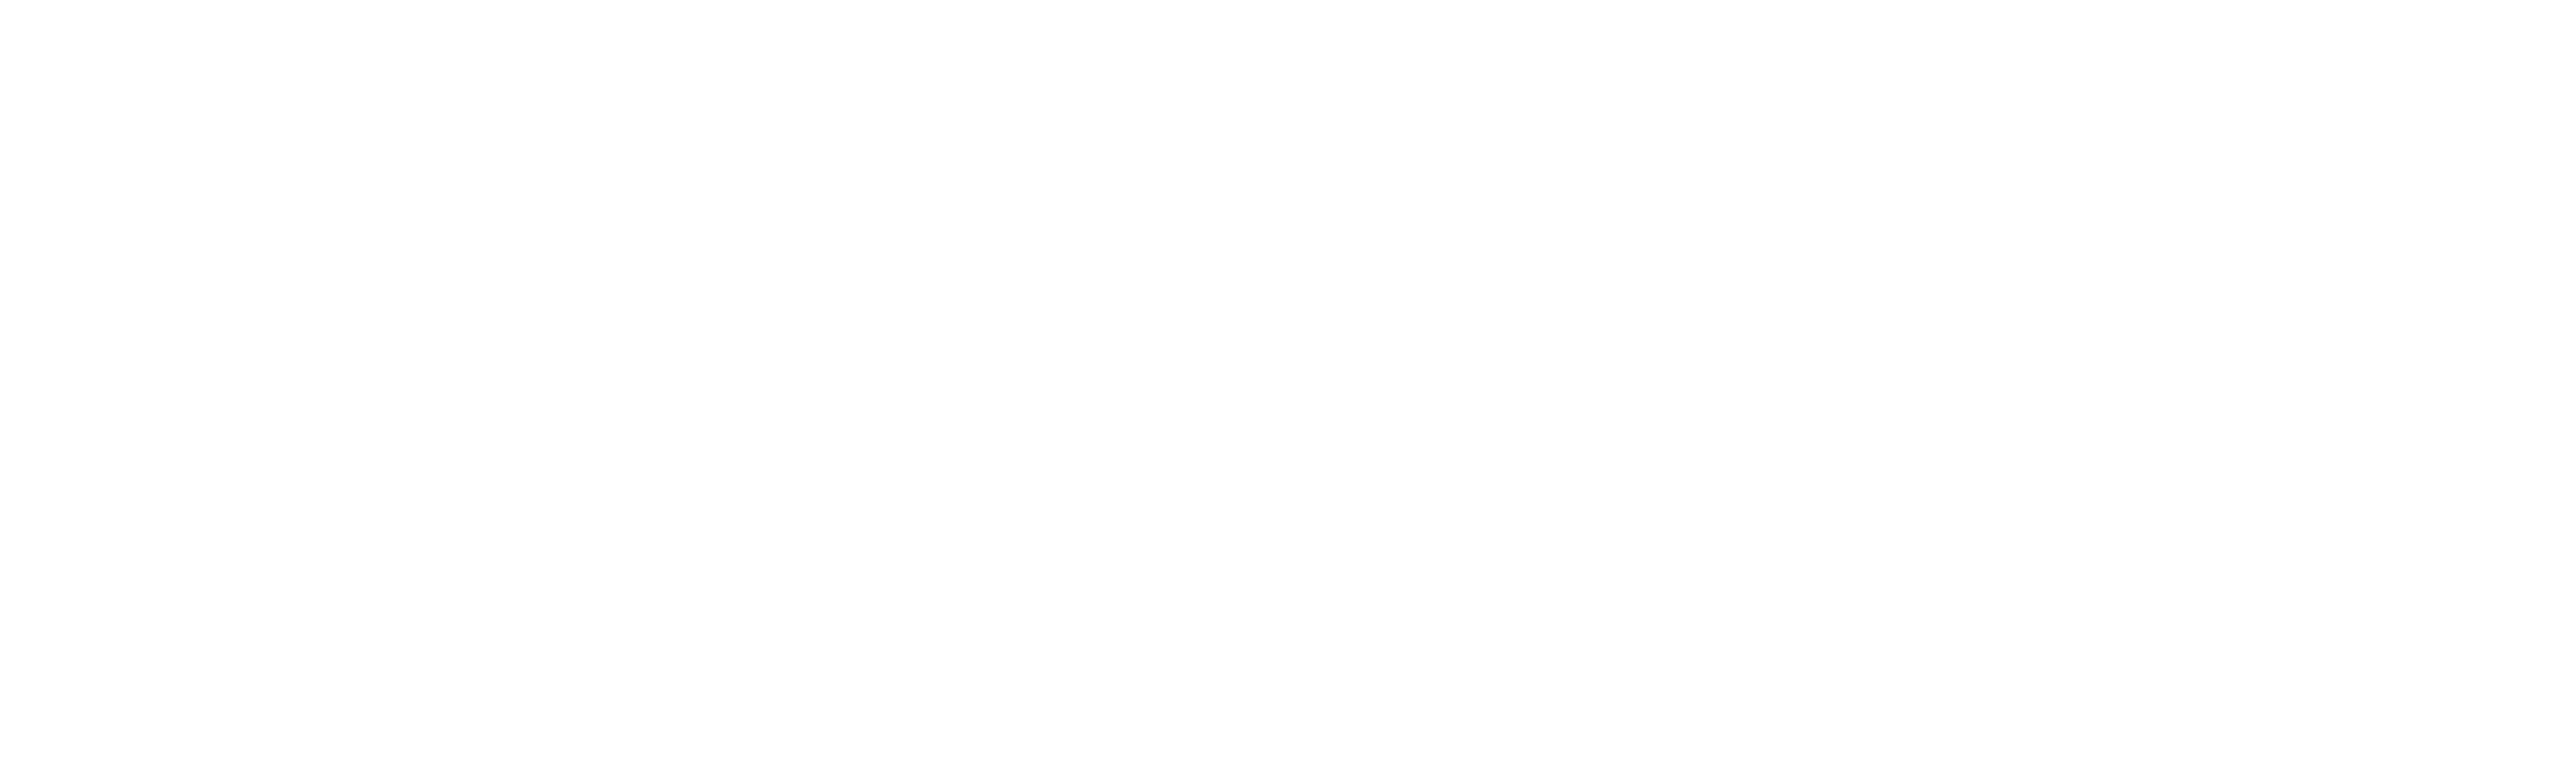 IMDT | Member of Institute of Modern Dog Trainers